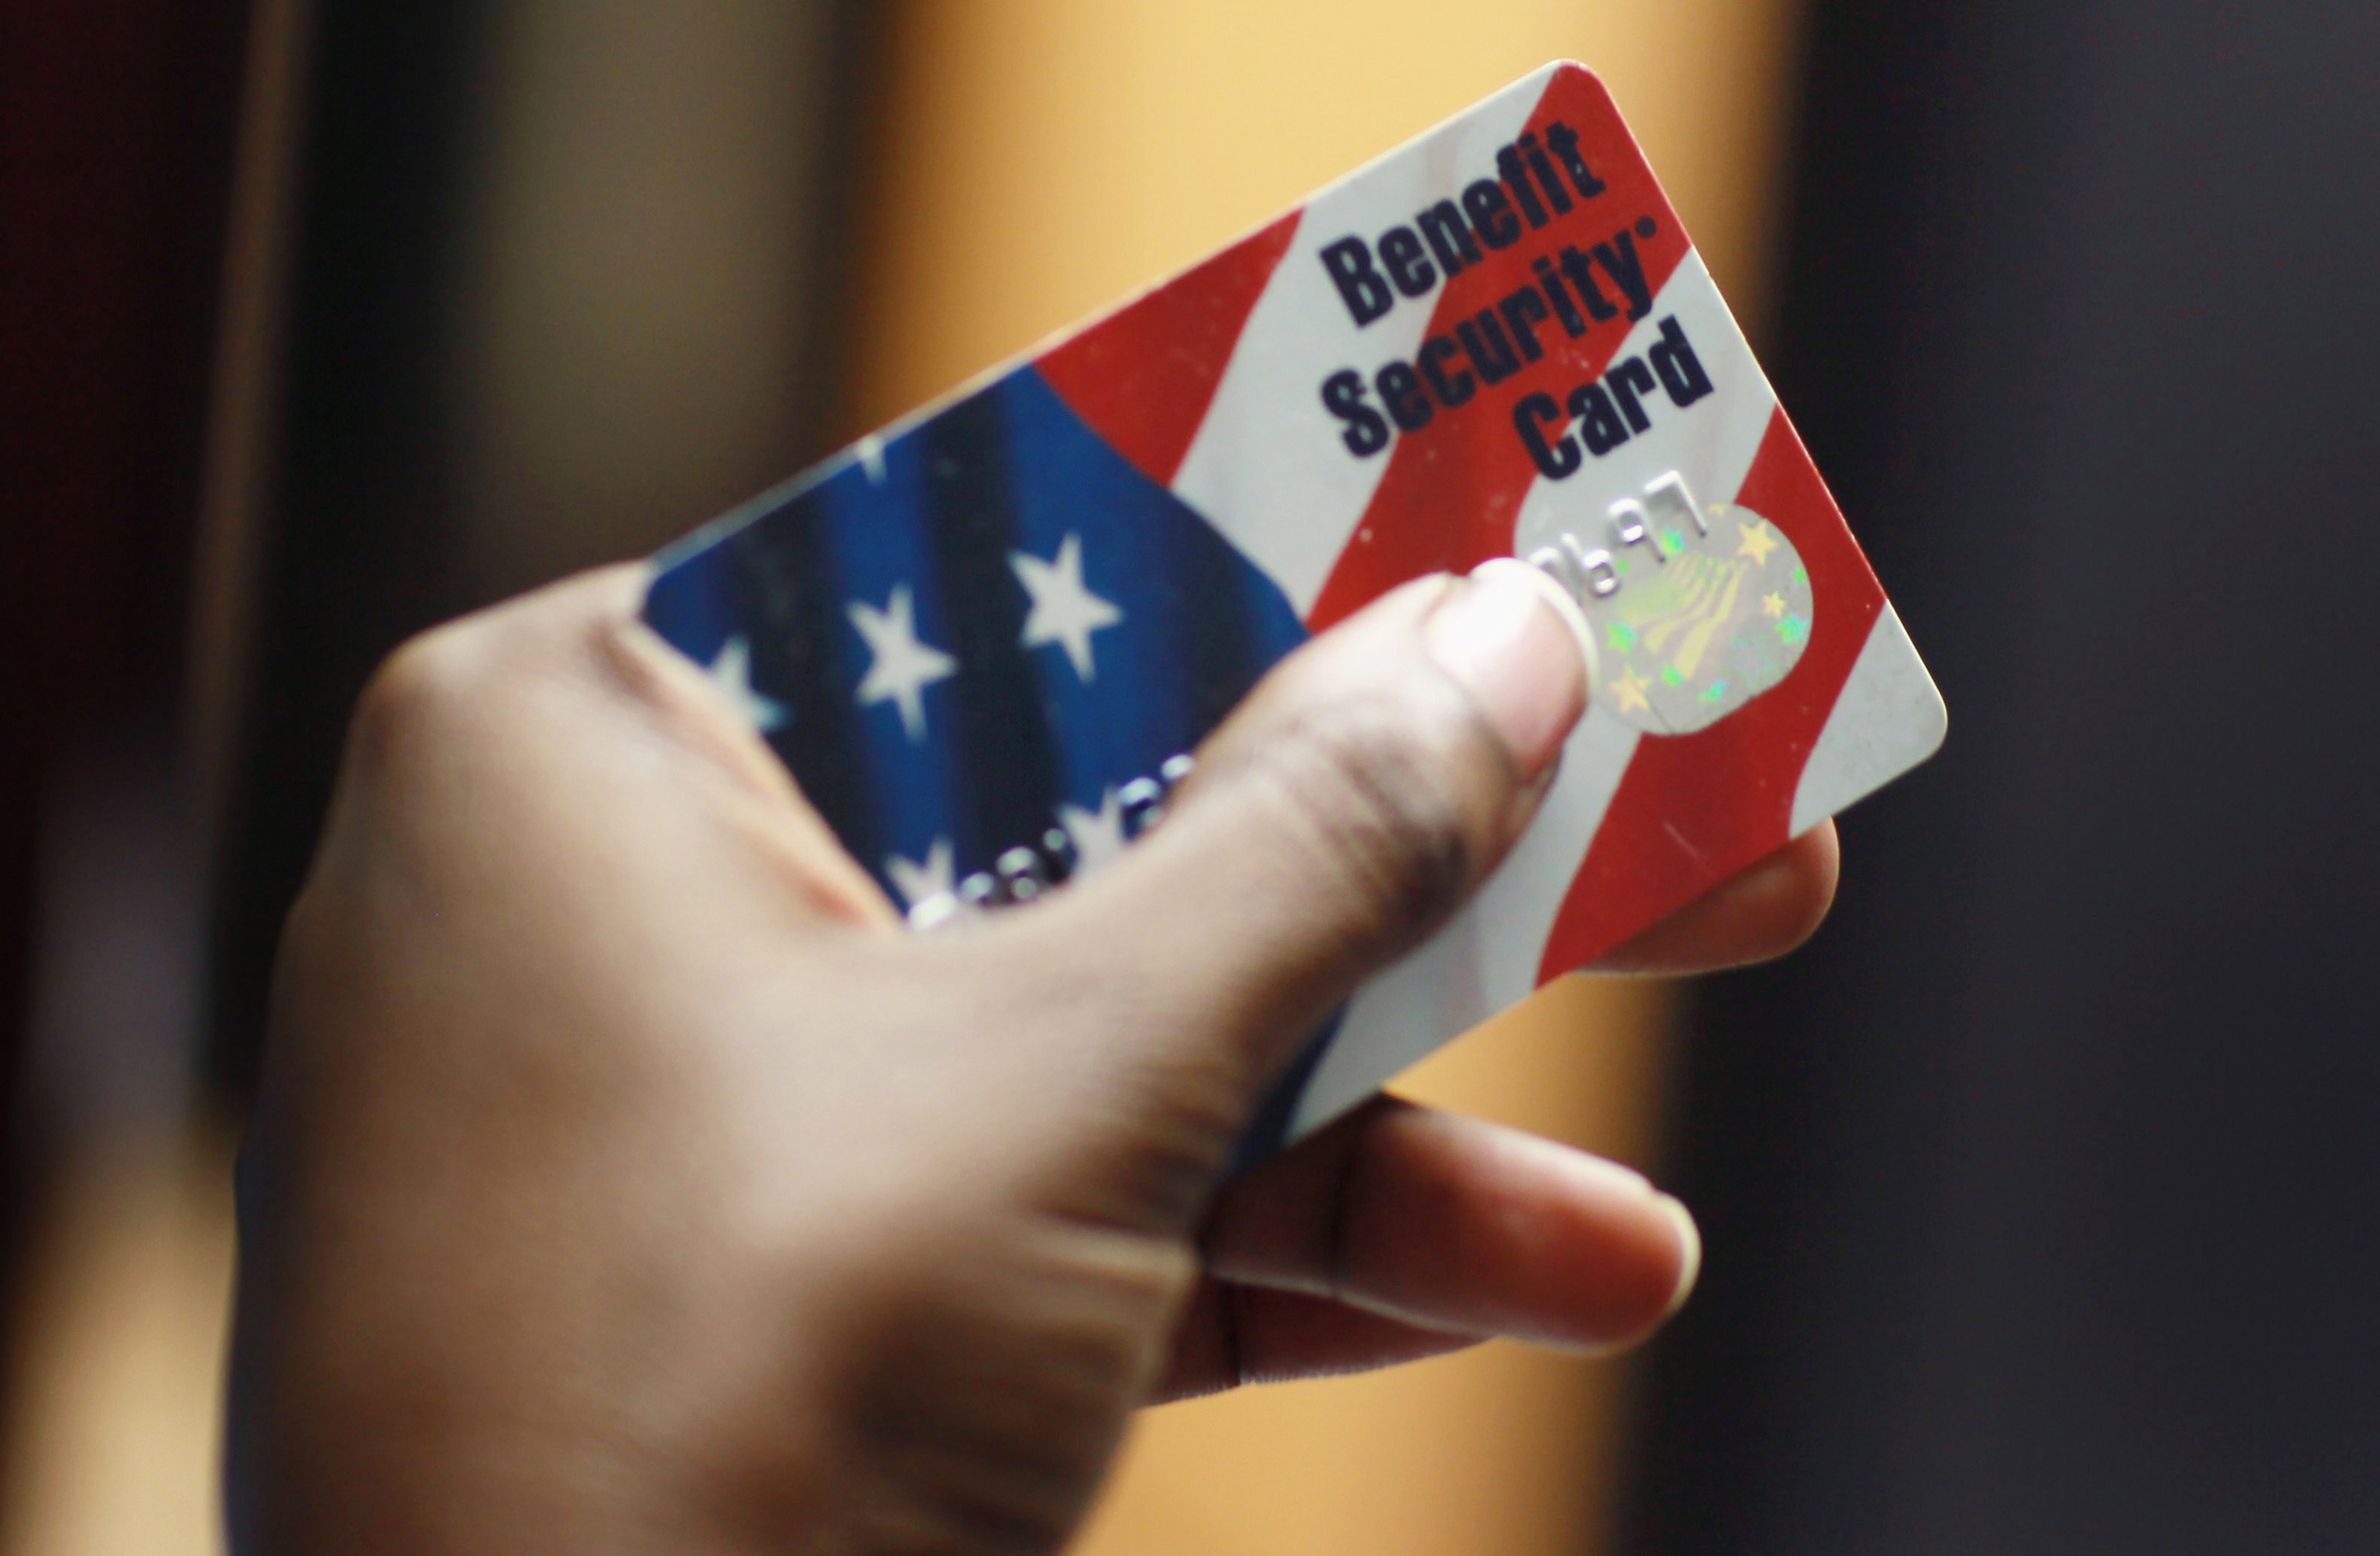 Food stamp changes would mainly hurt those living in extreme